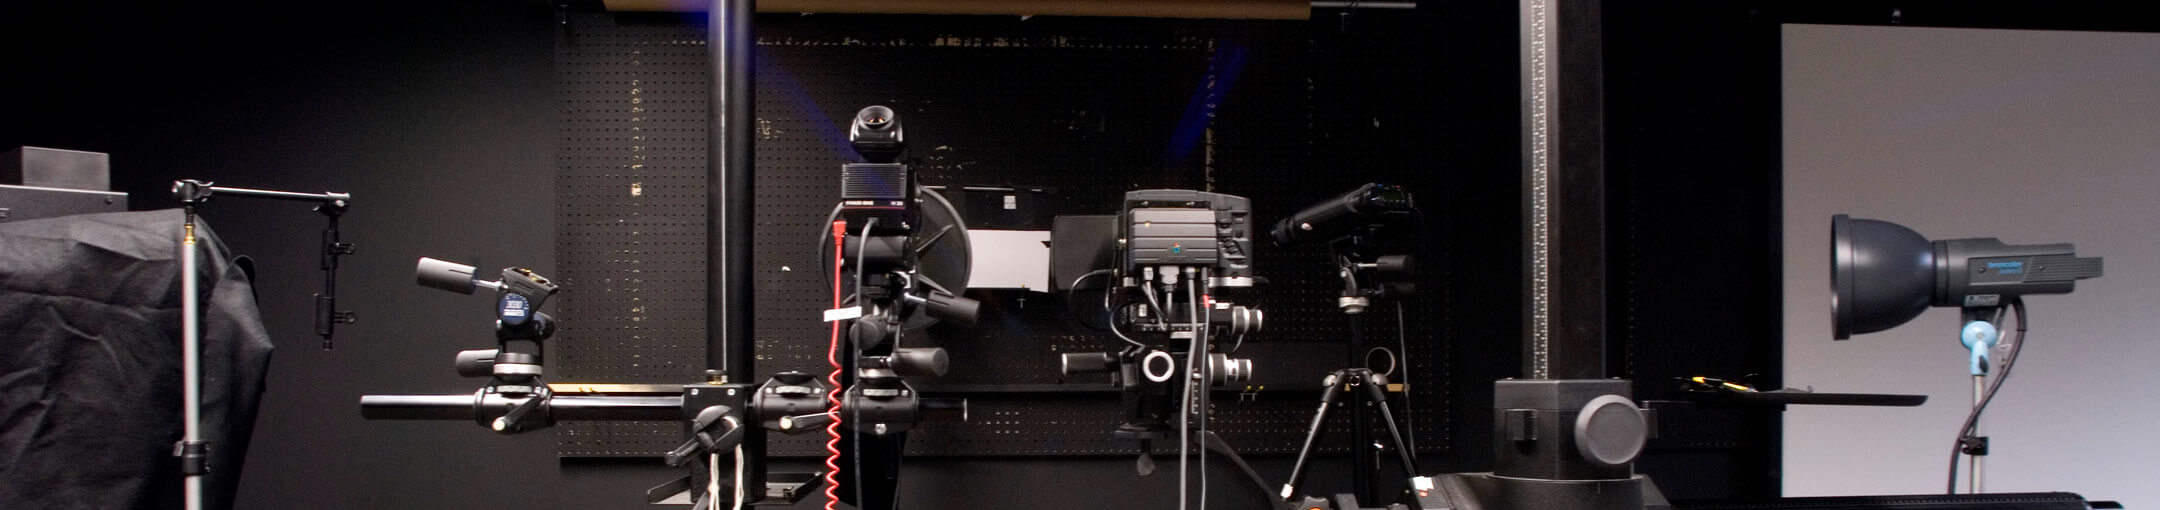 Several pieces of camera and lighting equipment on tripod stands.